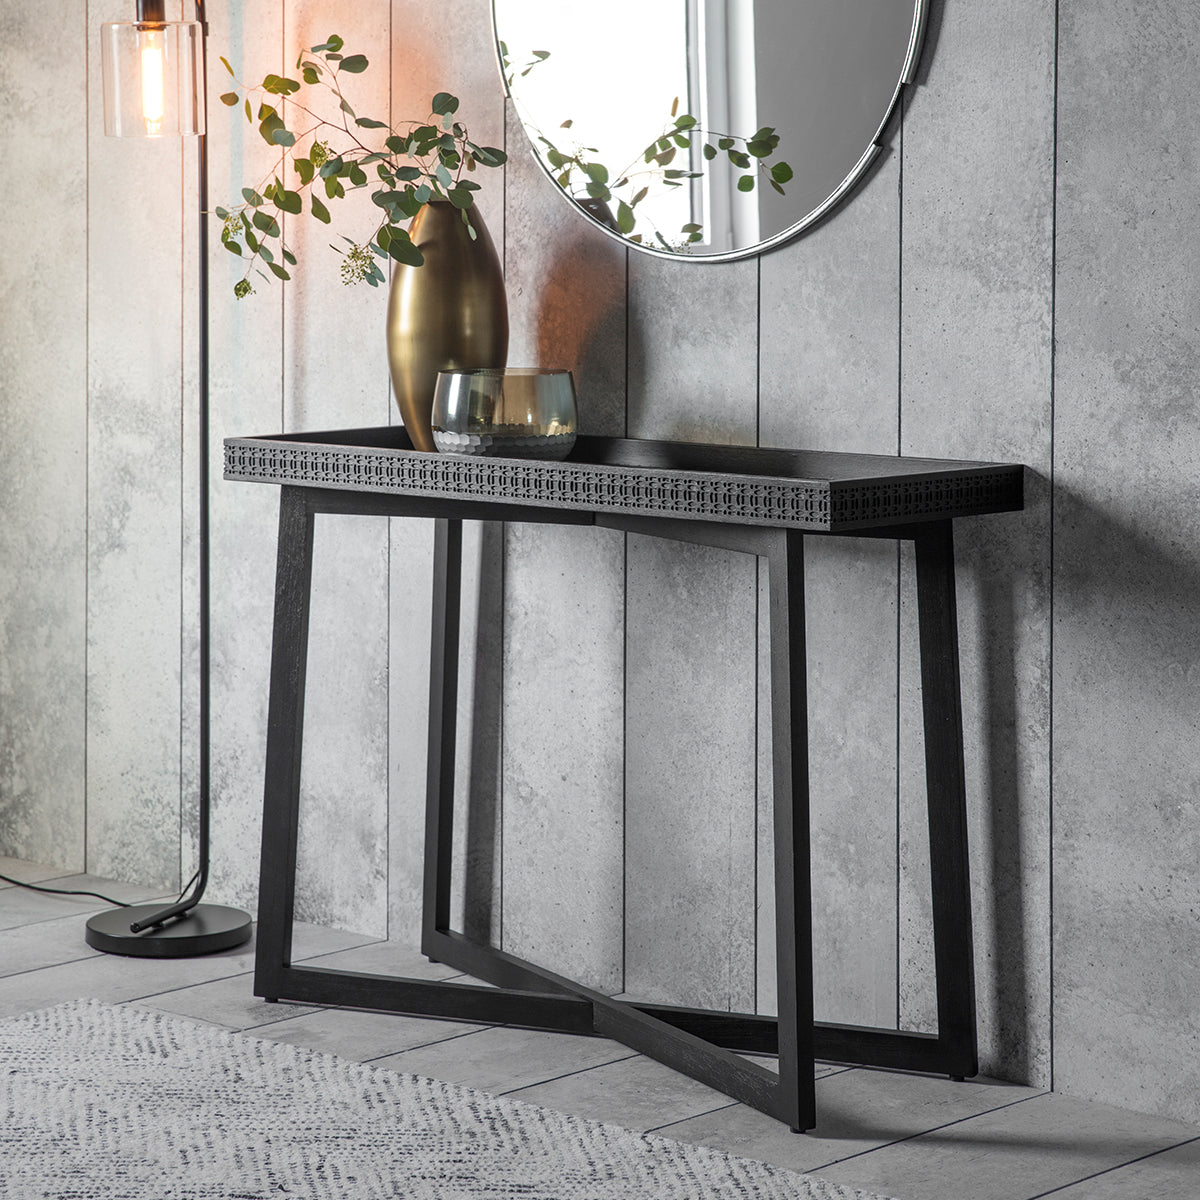 Greenwich Console Table in Matt Charcoal